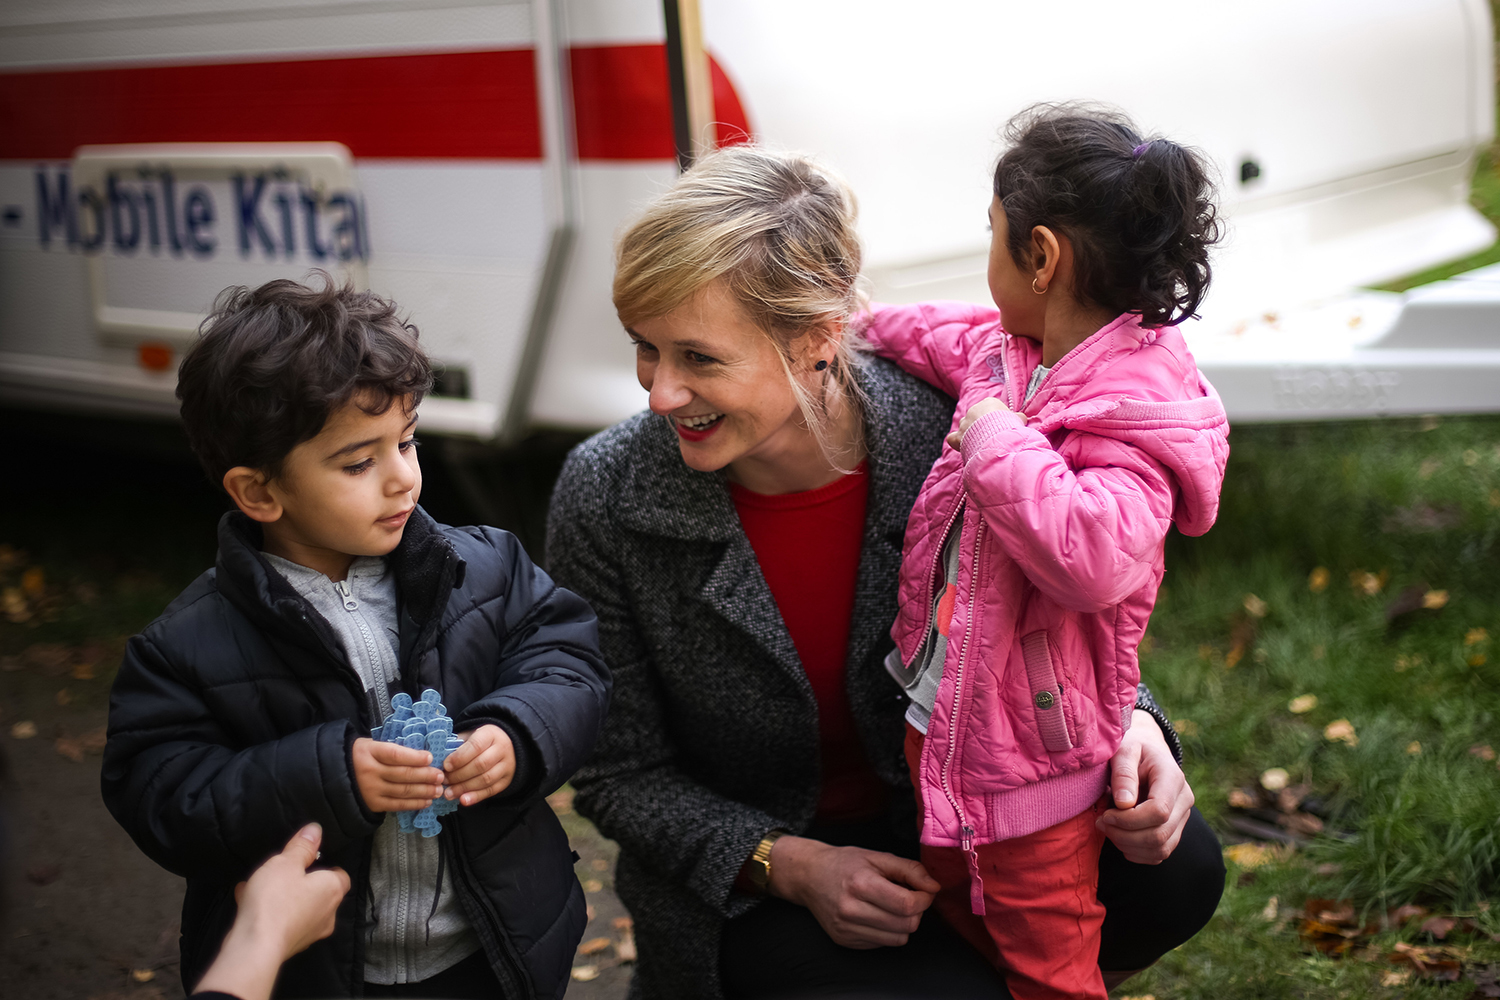 Christina Kampmann, then-family minister of North Rhine-Westphalia, speaks with two children from Syria in Gelsenkirchen, Germany, on Oct. 26, 2015.